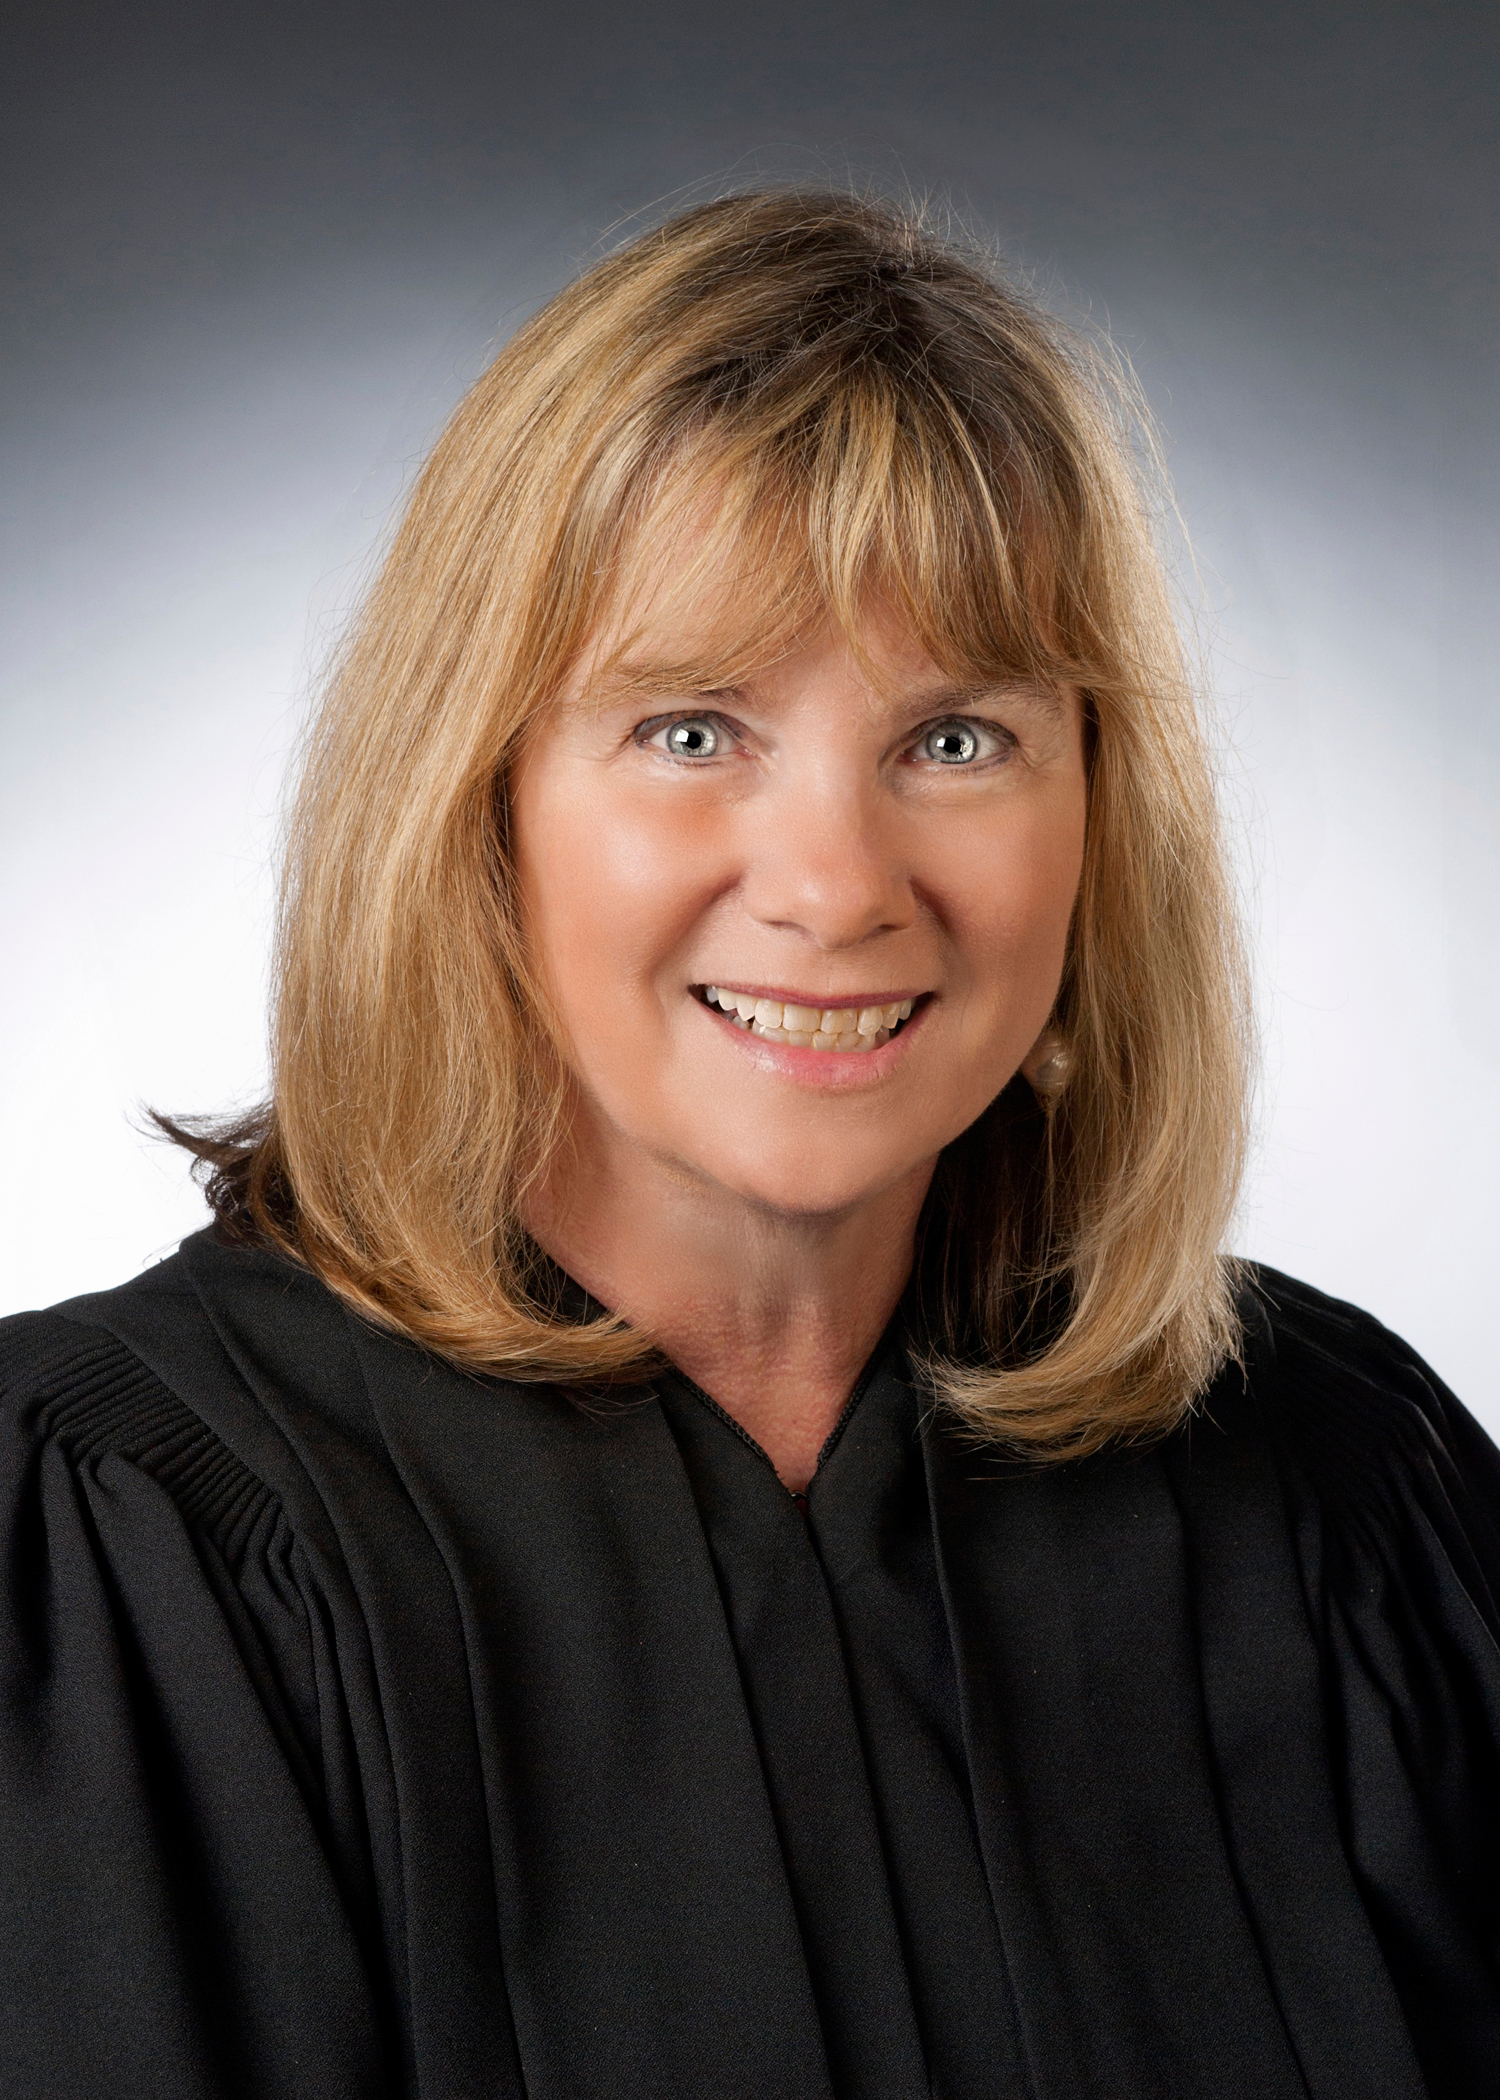 Indiana Court of Appeals Judge Patricia Riley traveled to Guantanamo Bay,  Cuba for U.S. Military